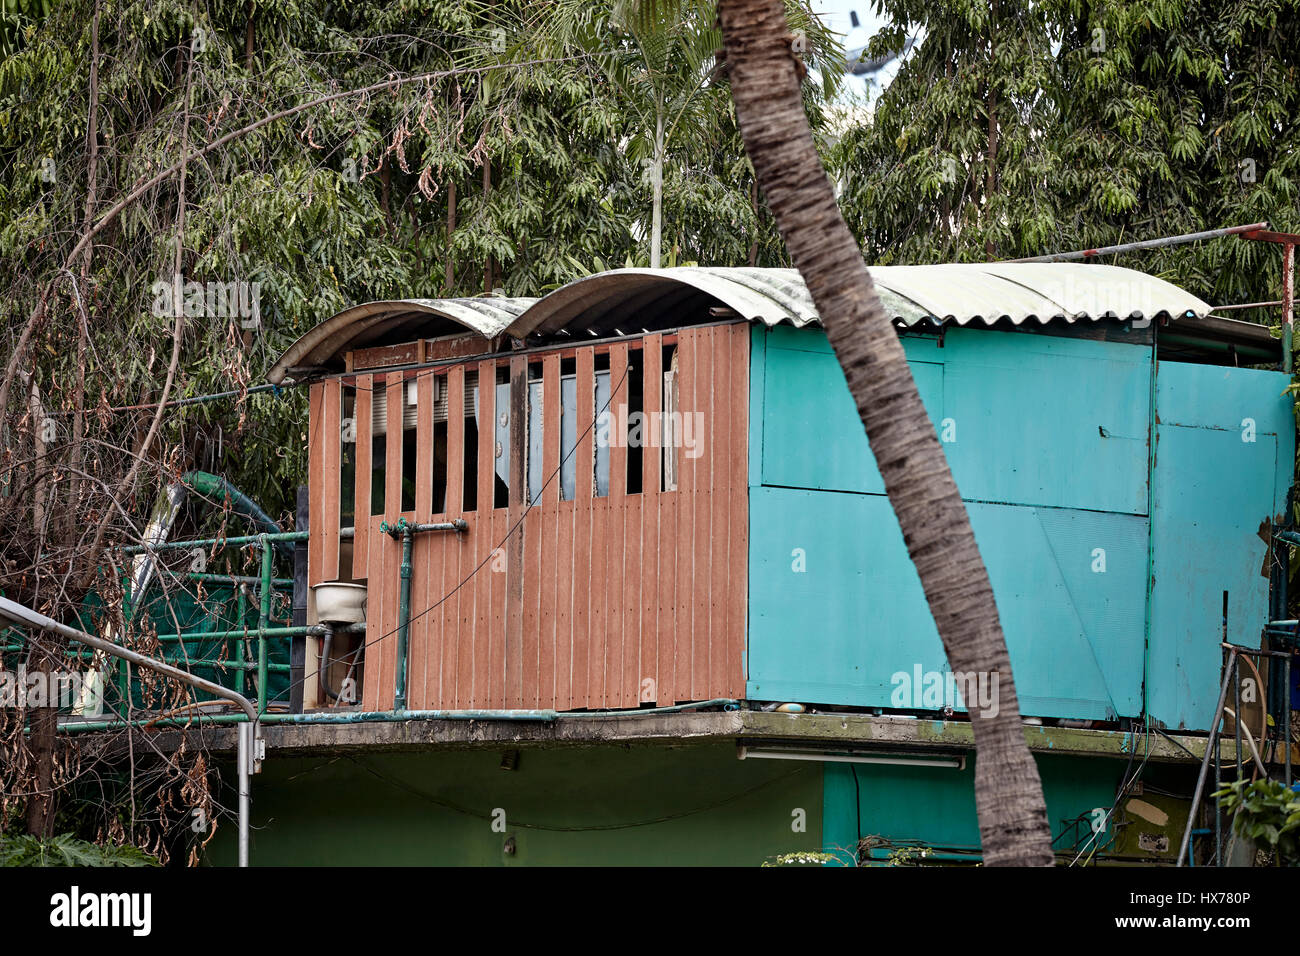 Thailand rural home with unusual WC placement. Southeast Asia - Stock Image